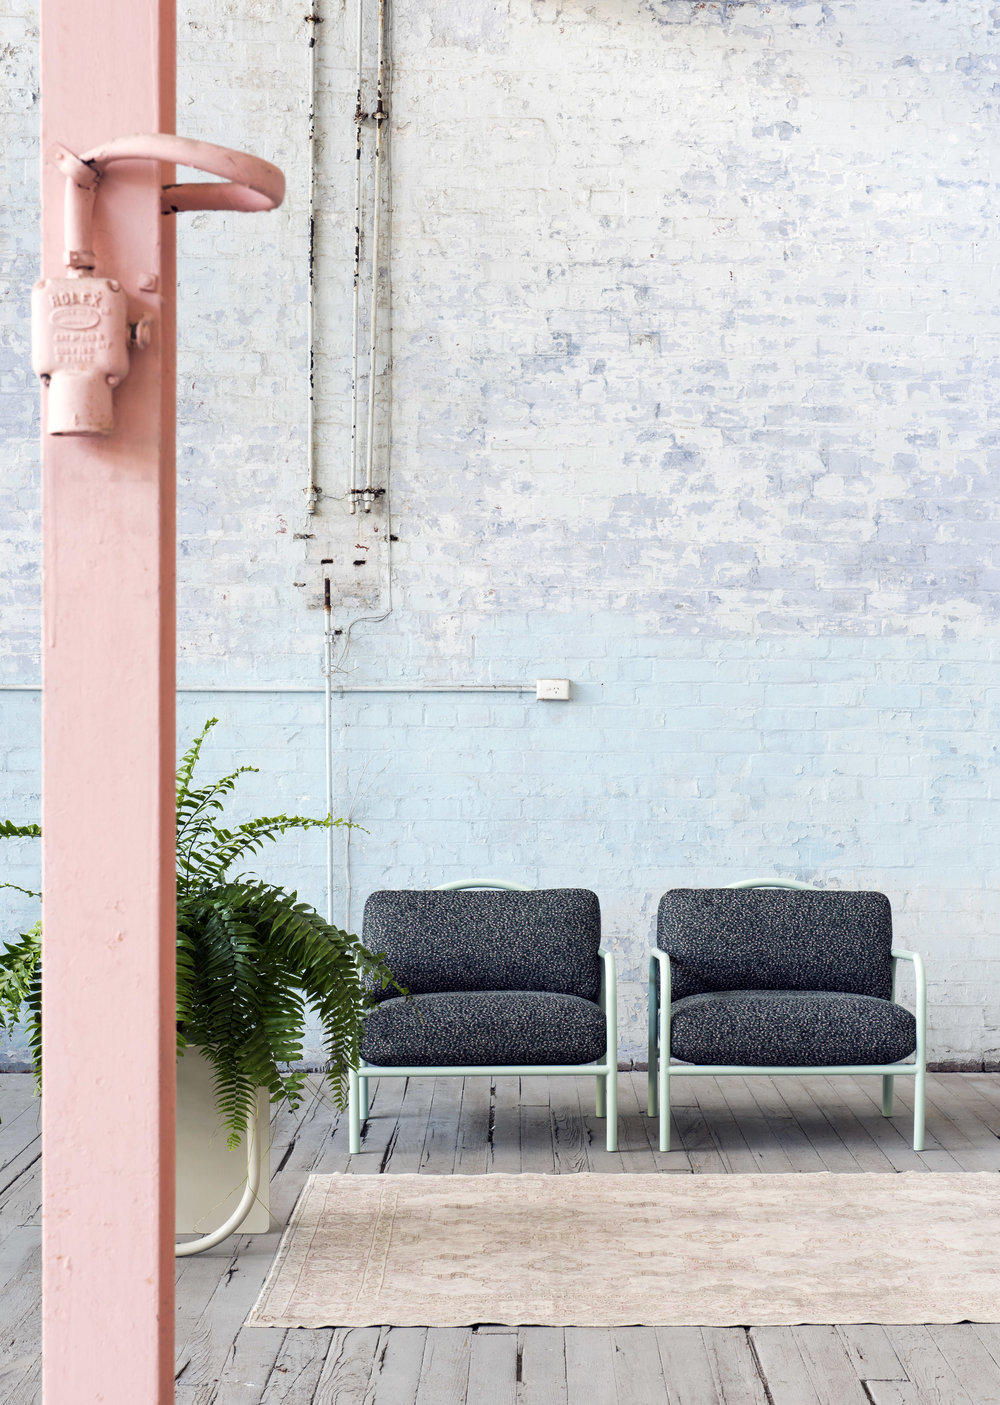 The  Halo  Easy Armchair in peppermint green frame and black upholstery. Photo - Nicole England.